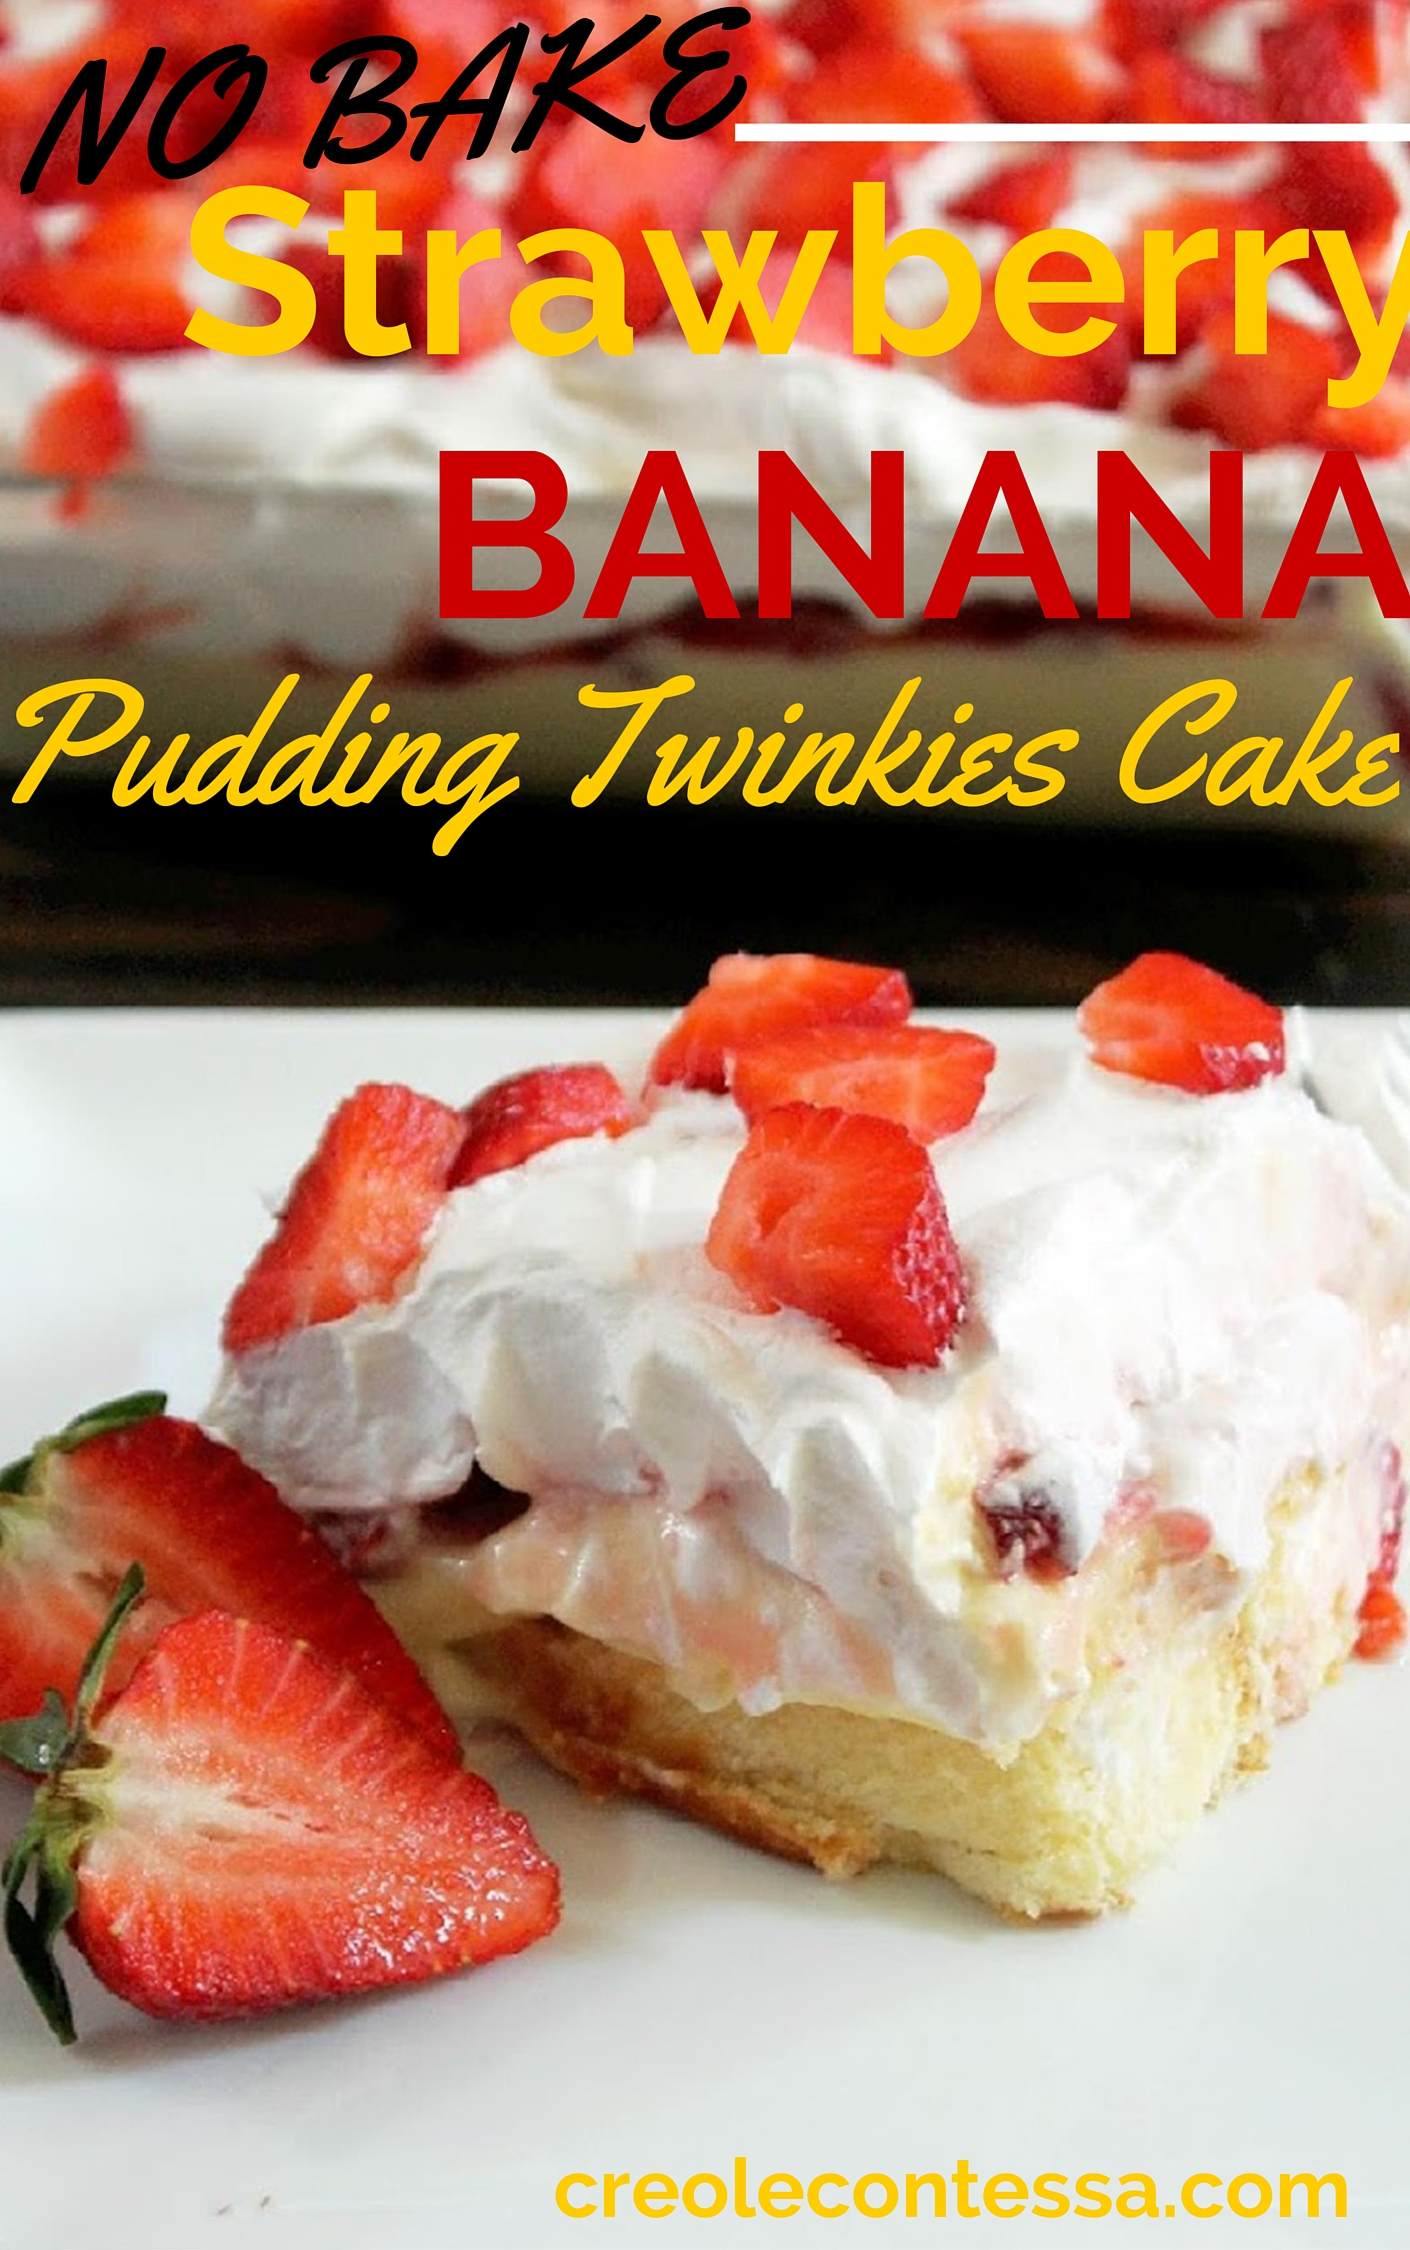 No Bake Strawberry Banana Pudding Twinkies Cake-Creole Contessa